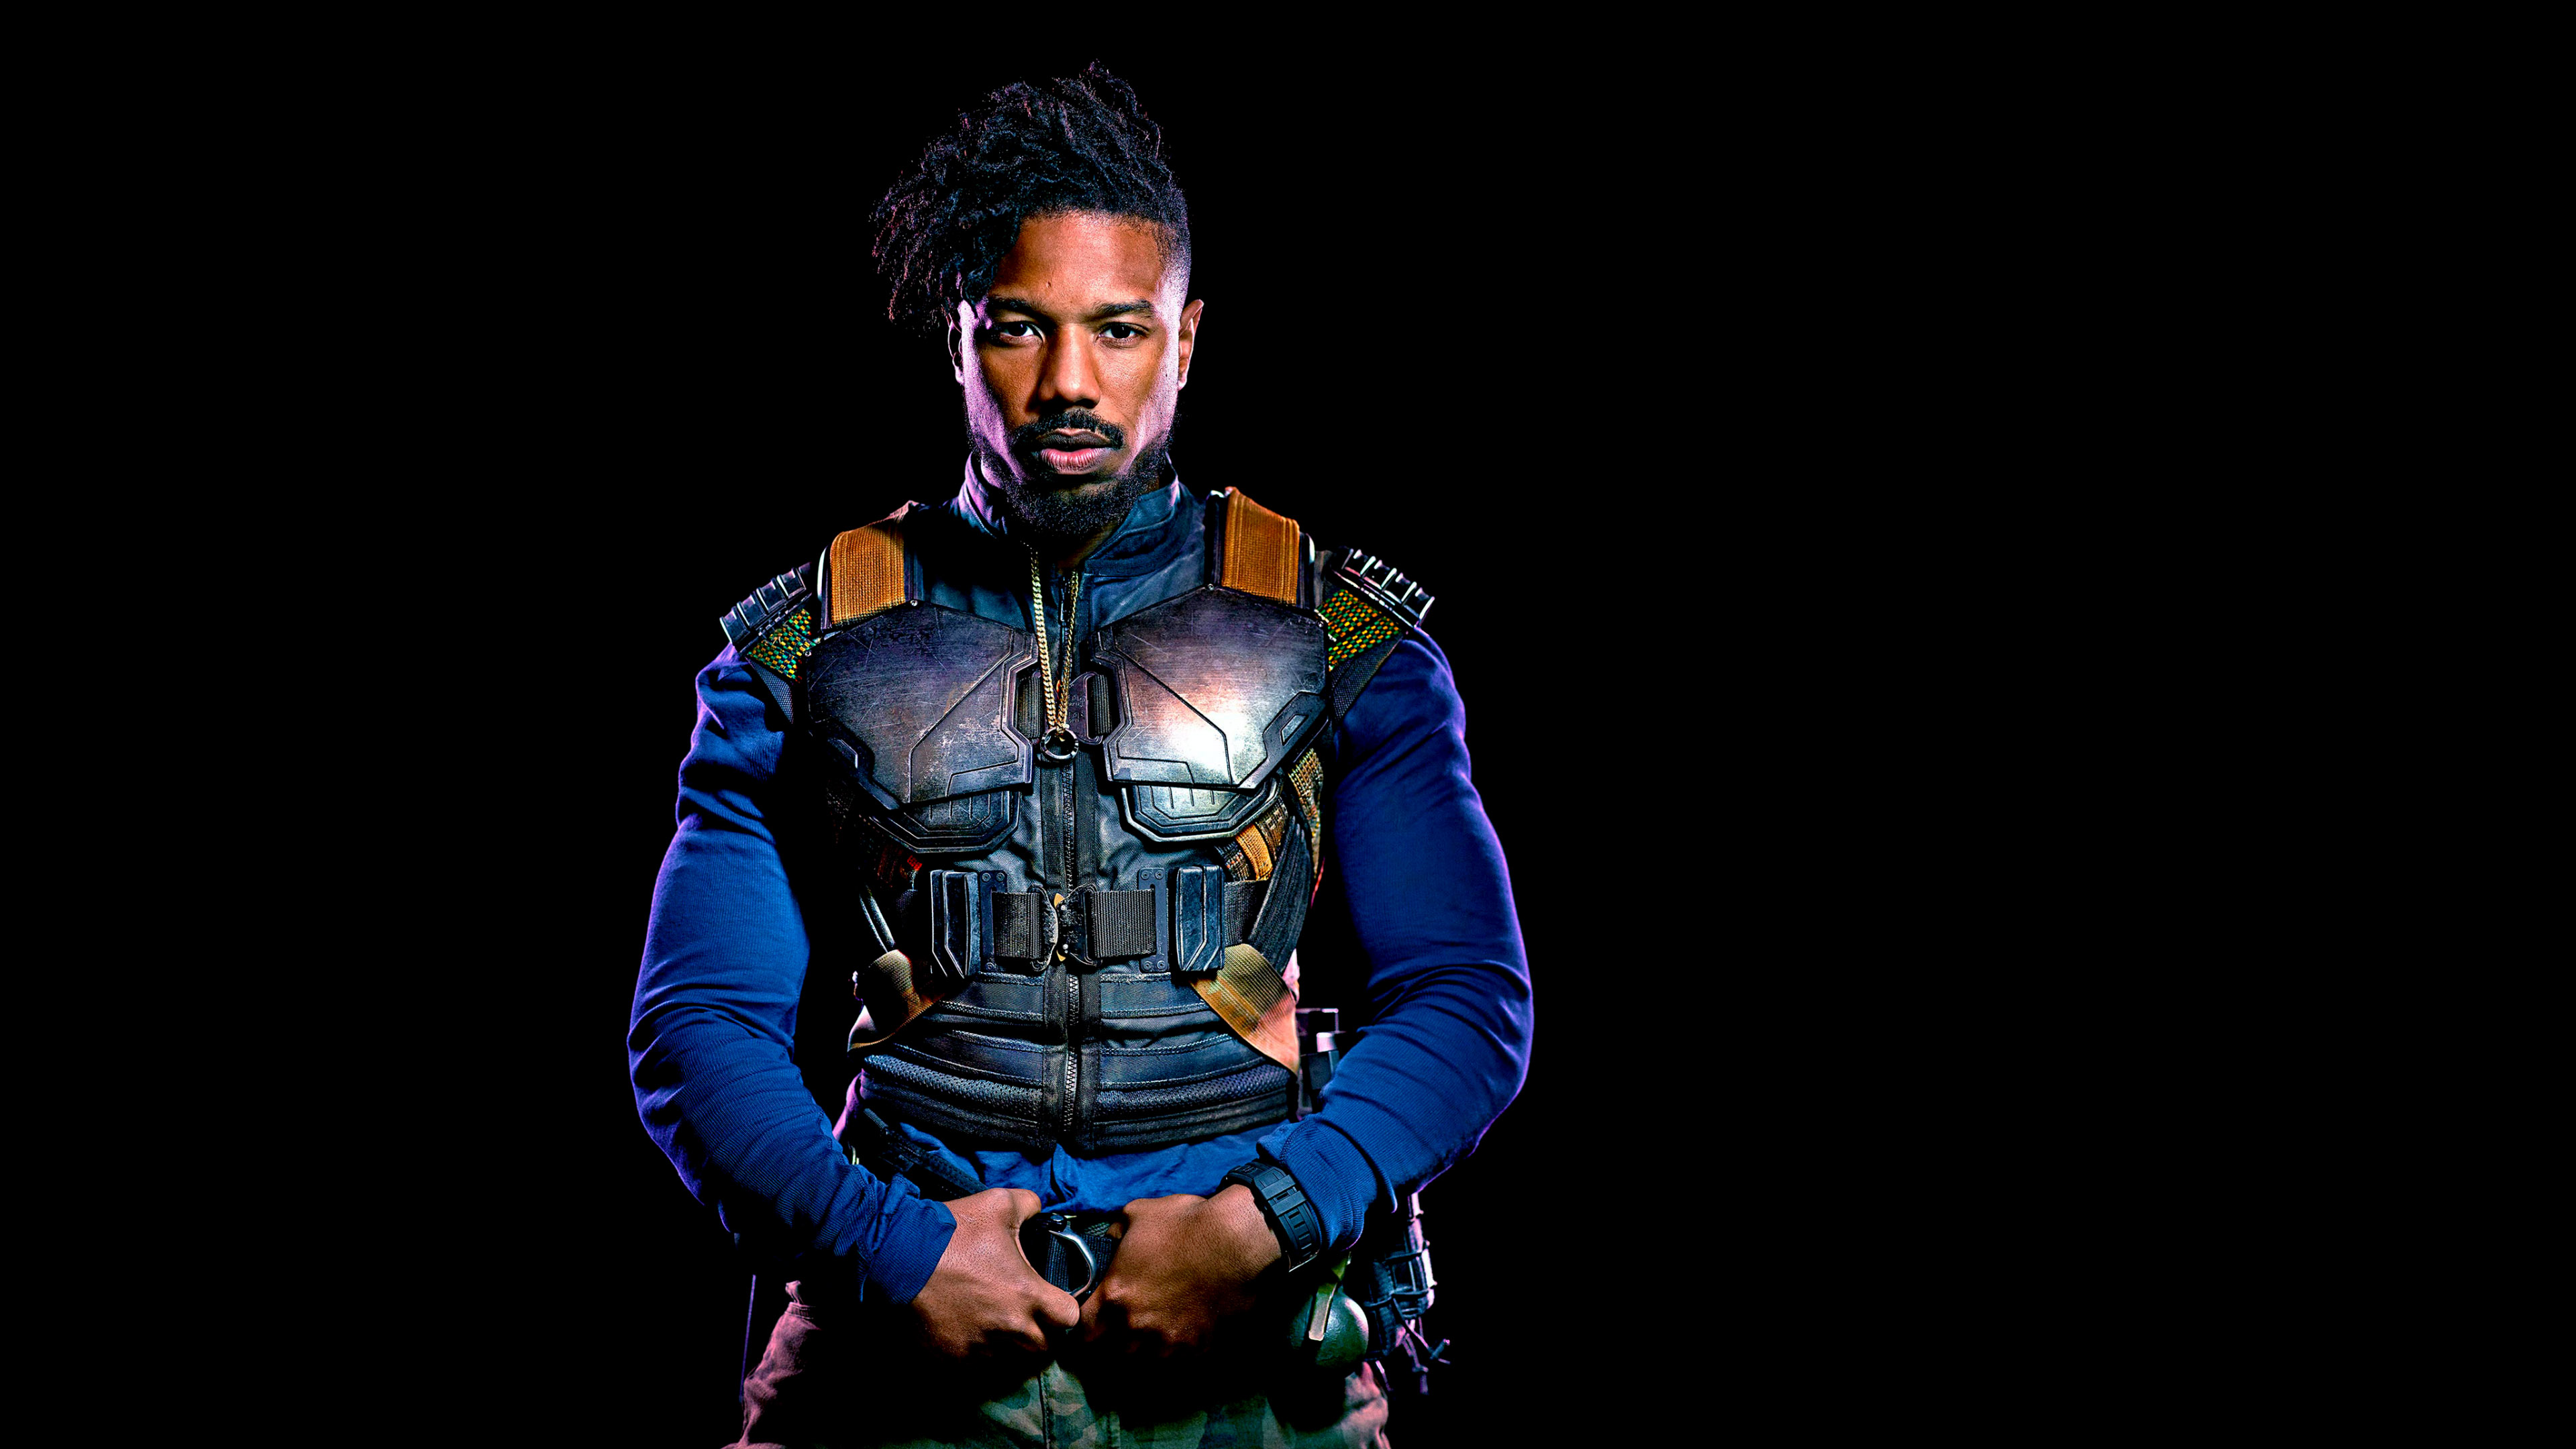 2932x2932 Pubg Android Game 4k Ipad Pro Retina Display Hd: 2932x2932 Michael B Jordan As Erik Killmonger In Black